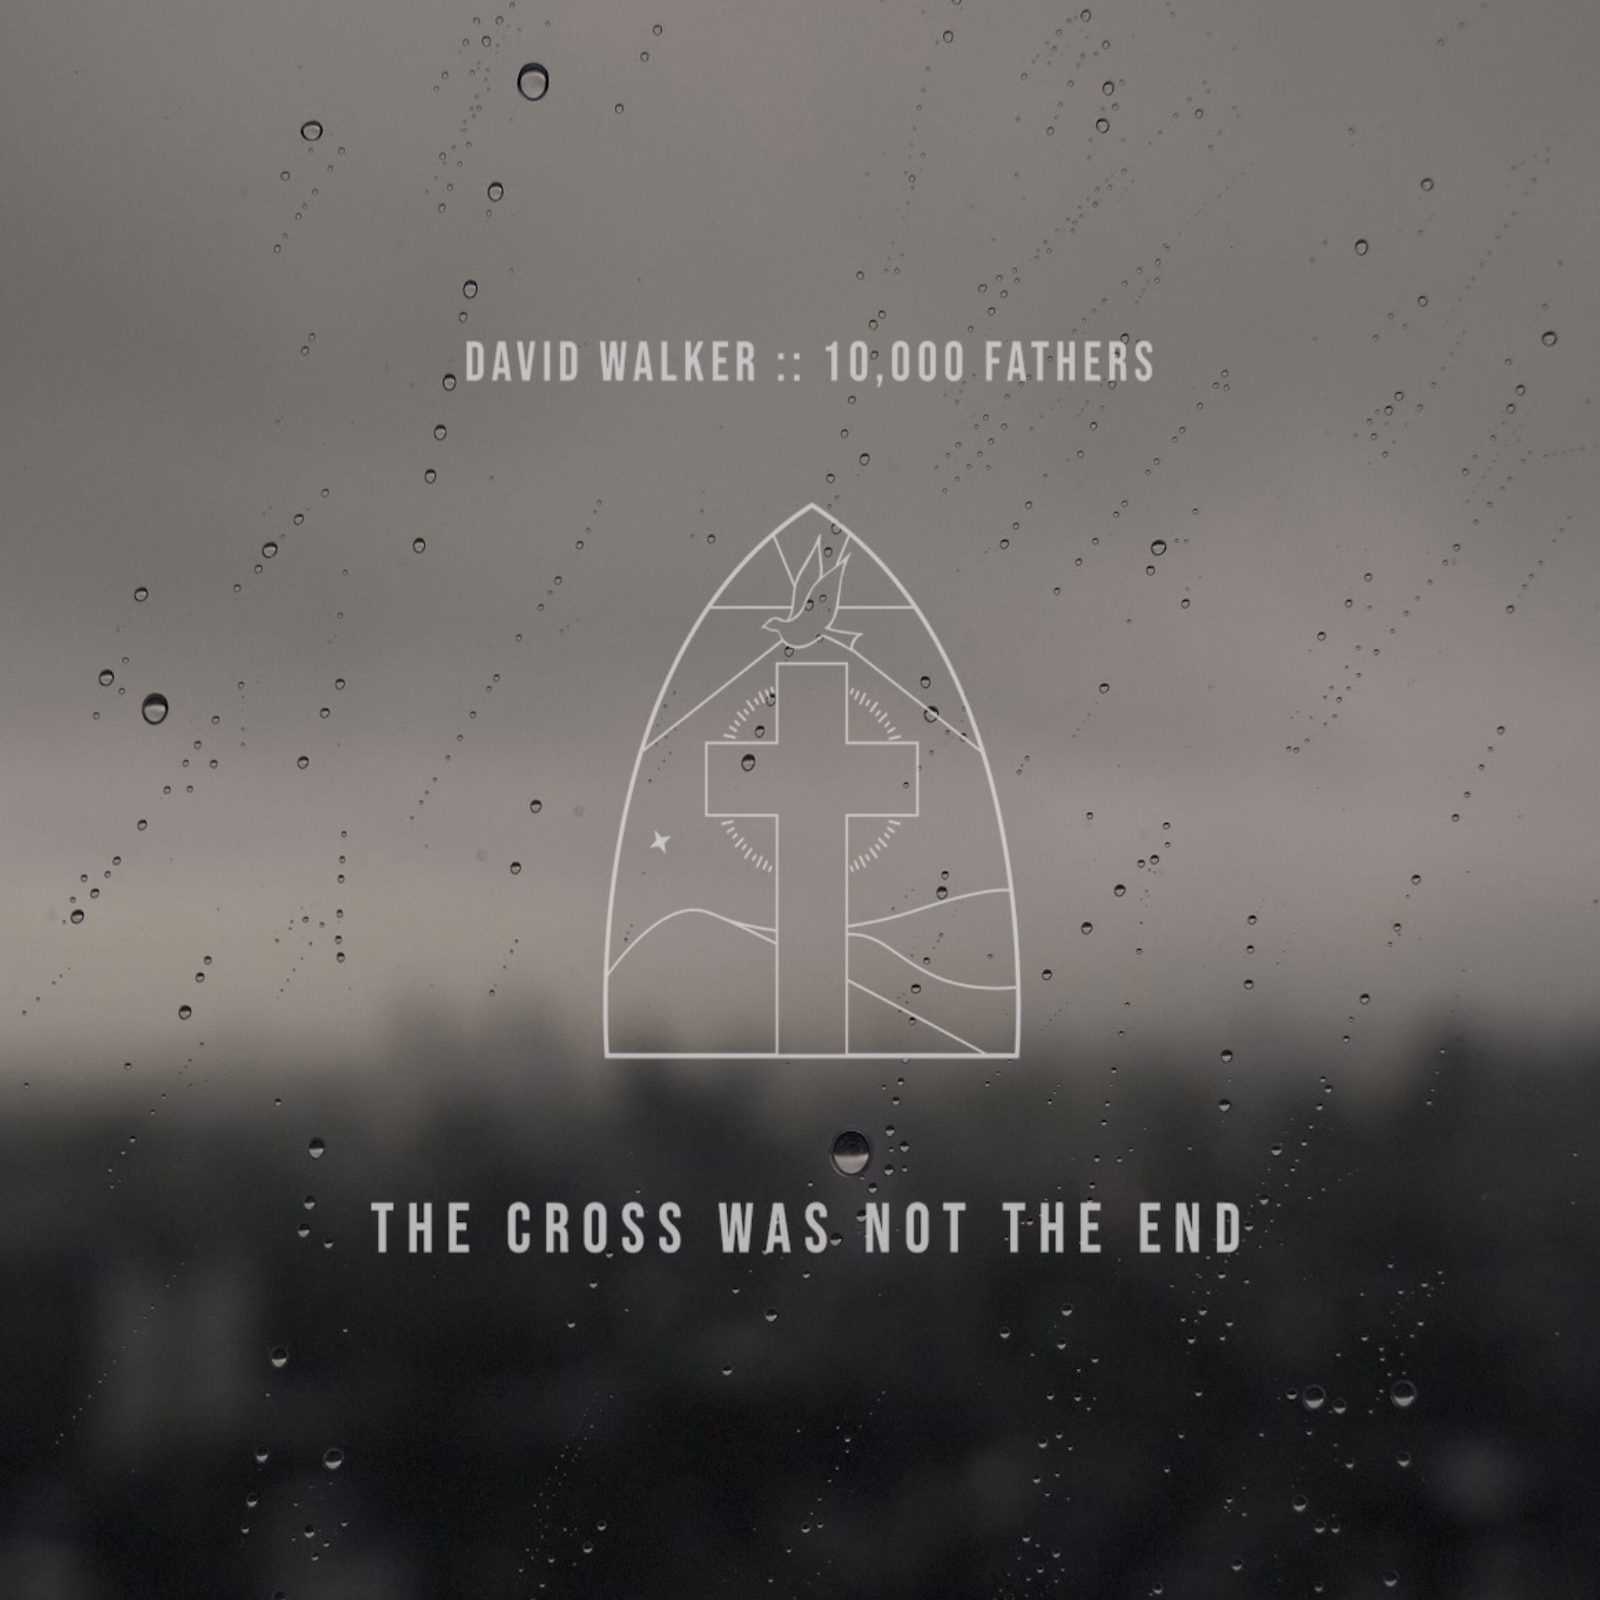 DOWNLOAD CHARTS FOR THE CROSS WAS NOT THE END